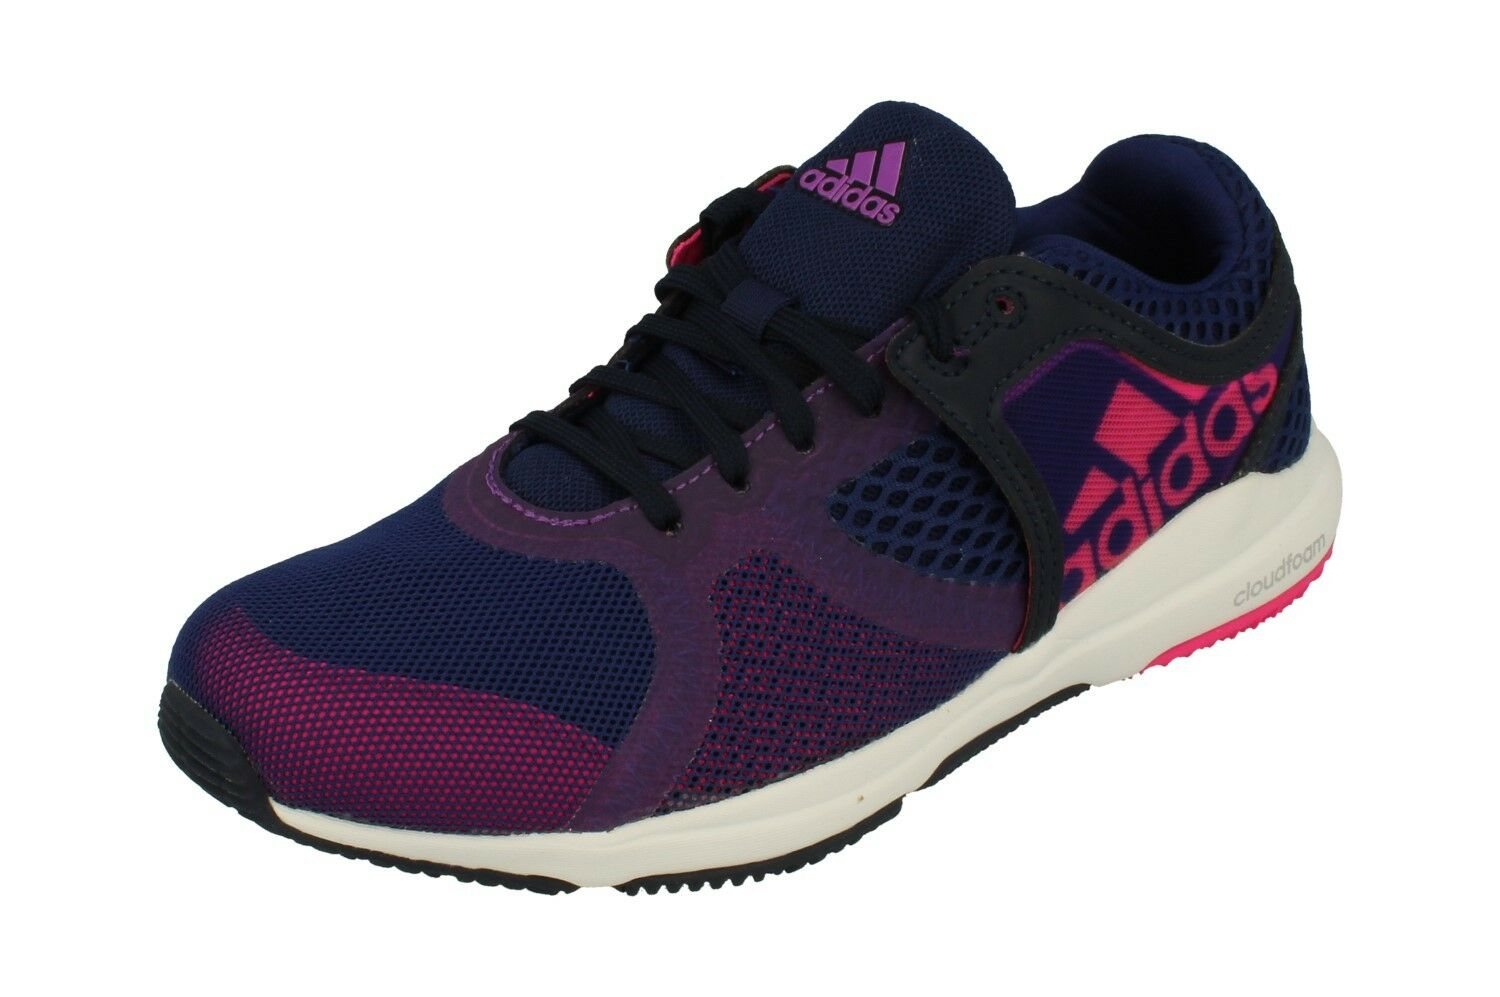 Adidas Crazymove Sneakers Cf Womens Running Trainers Sneakers Crazymove AQ1975 736044